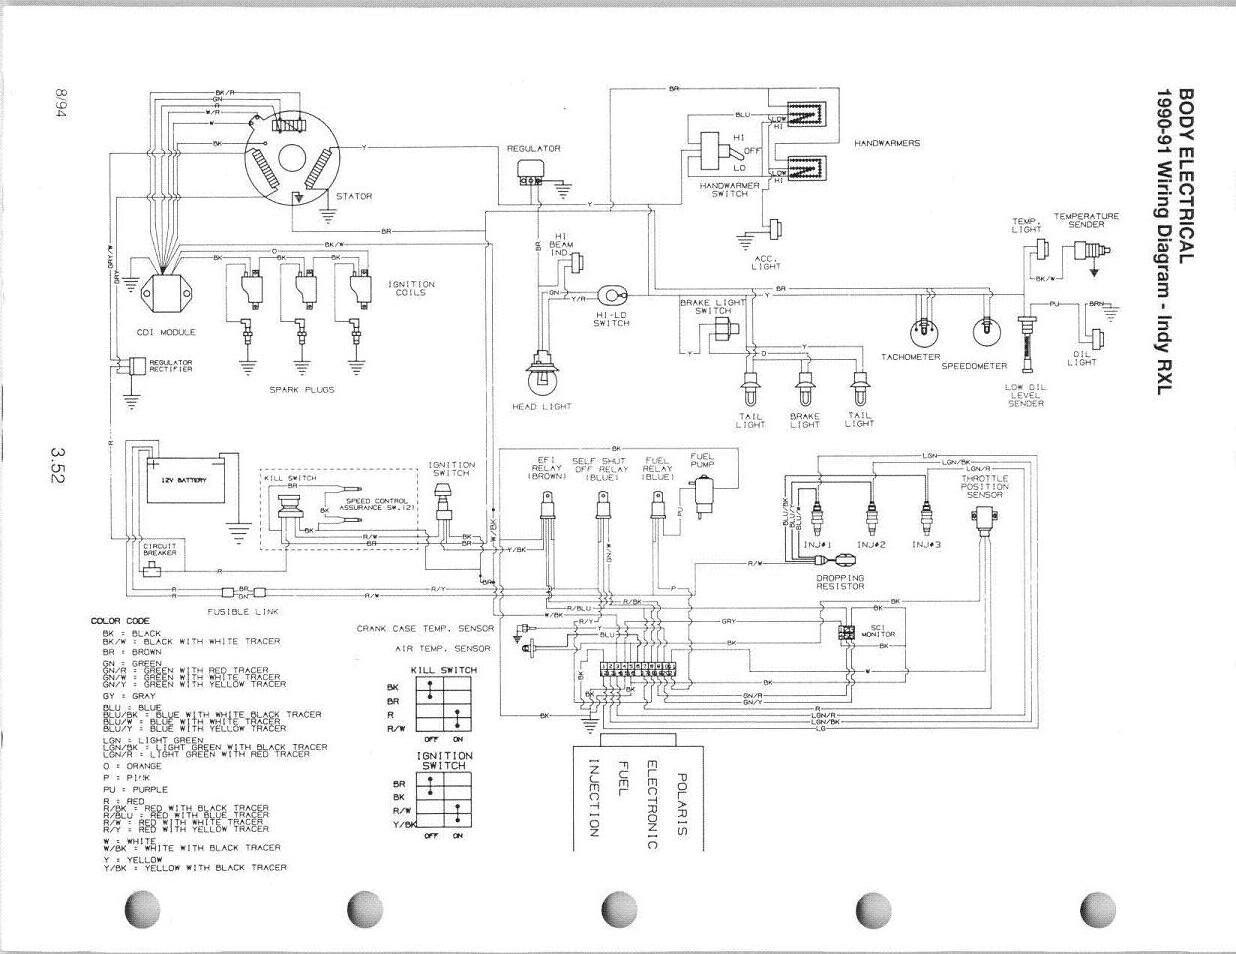 wiring diagram polaris sportsman the wiring diagram polaris ace 570 wiring diagram polaris printable wiring wiring diagram